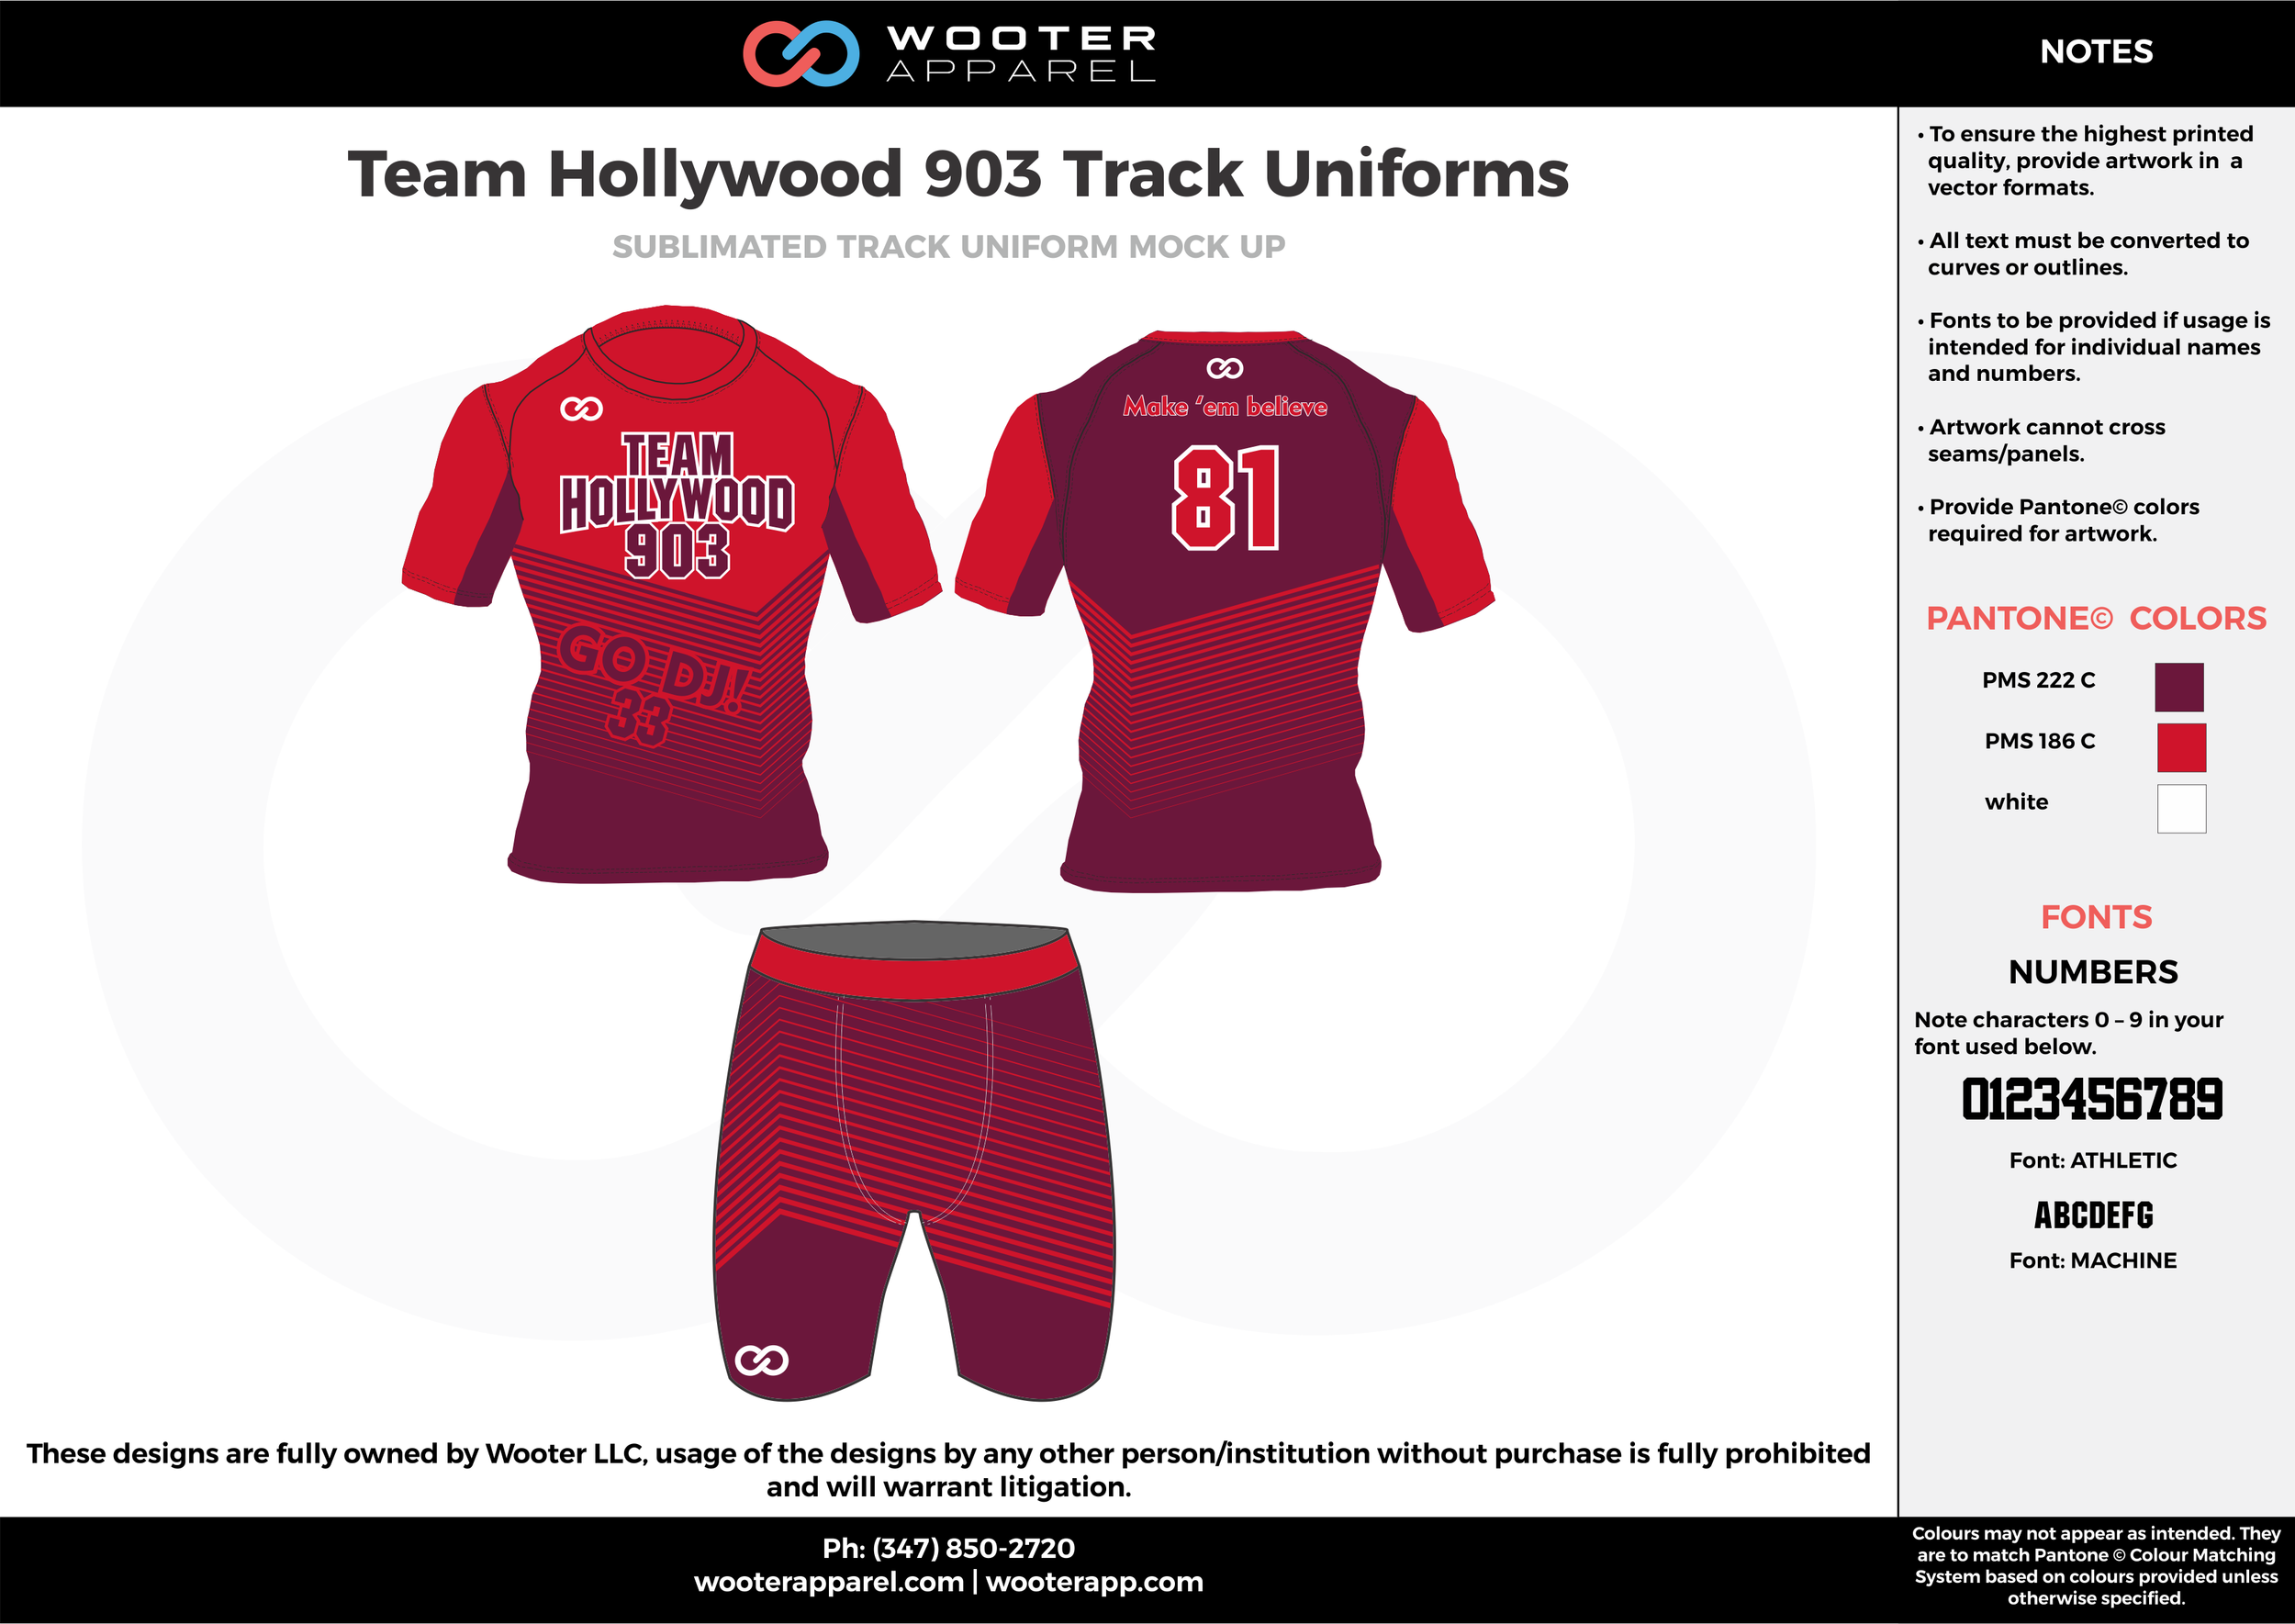 Team Hollywoods 903 Track Uniforms Maroon Red and white Sublimated Compression Track Uniforms Shirts and short